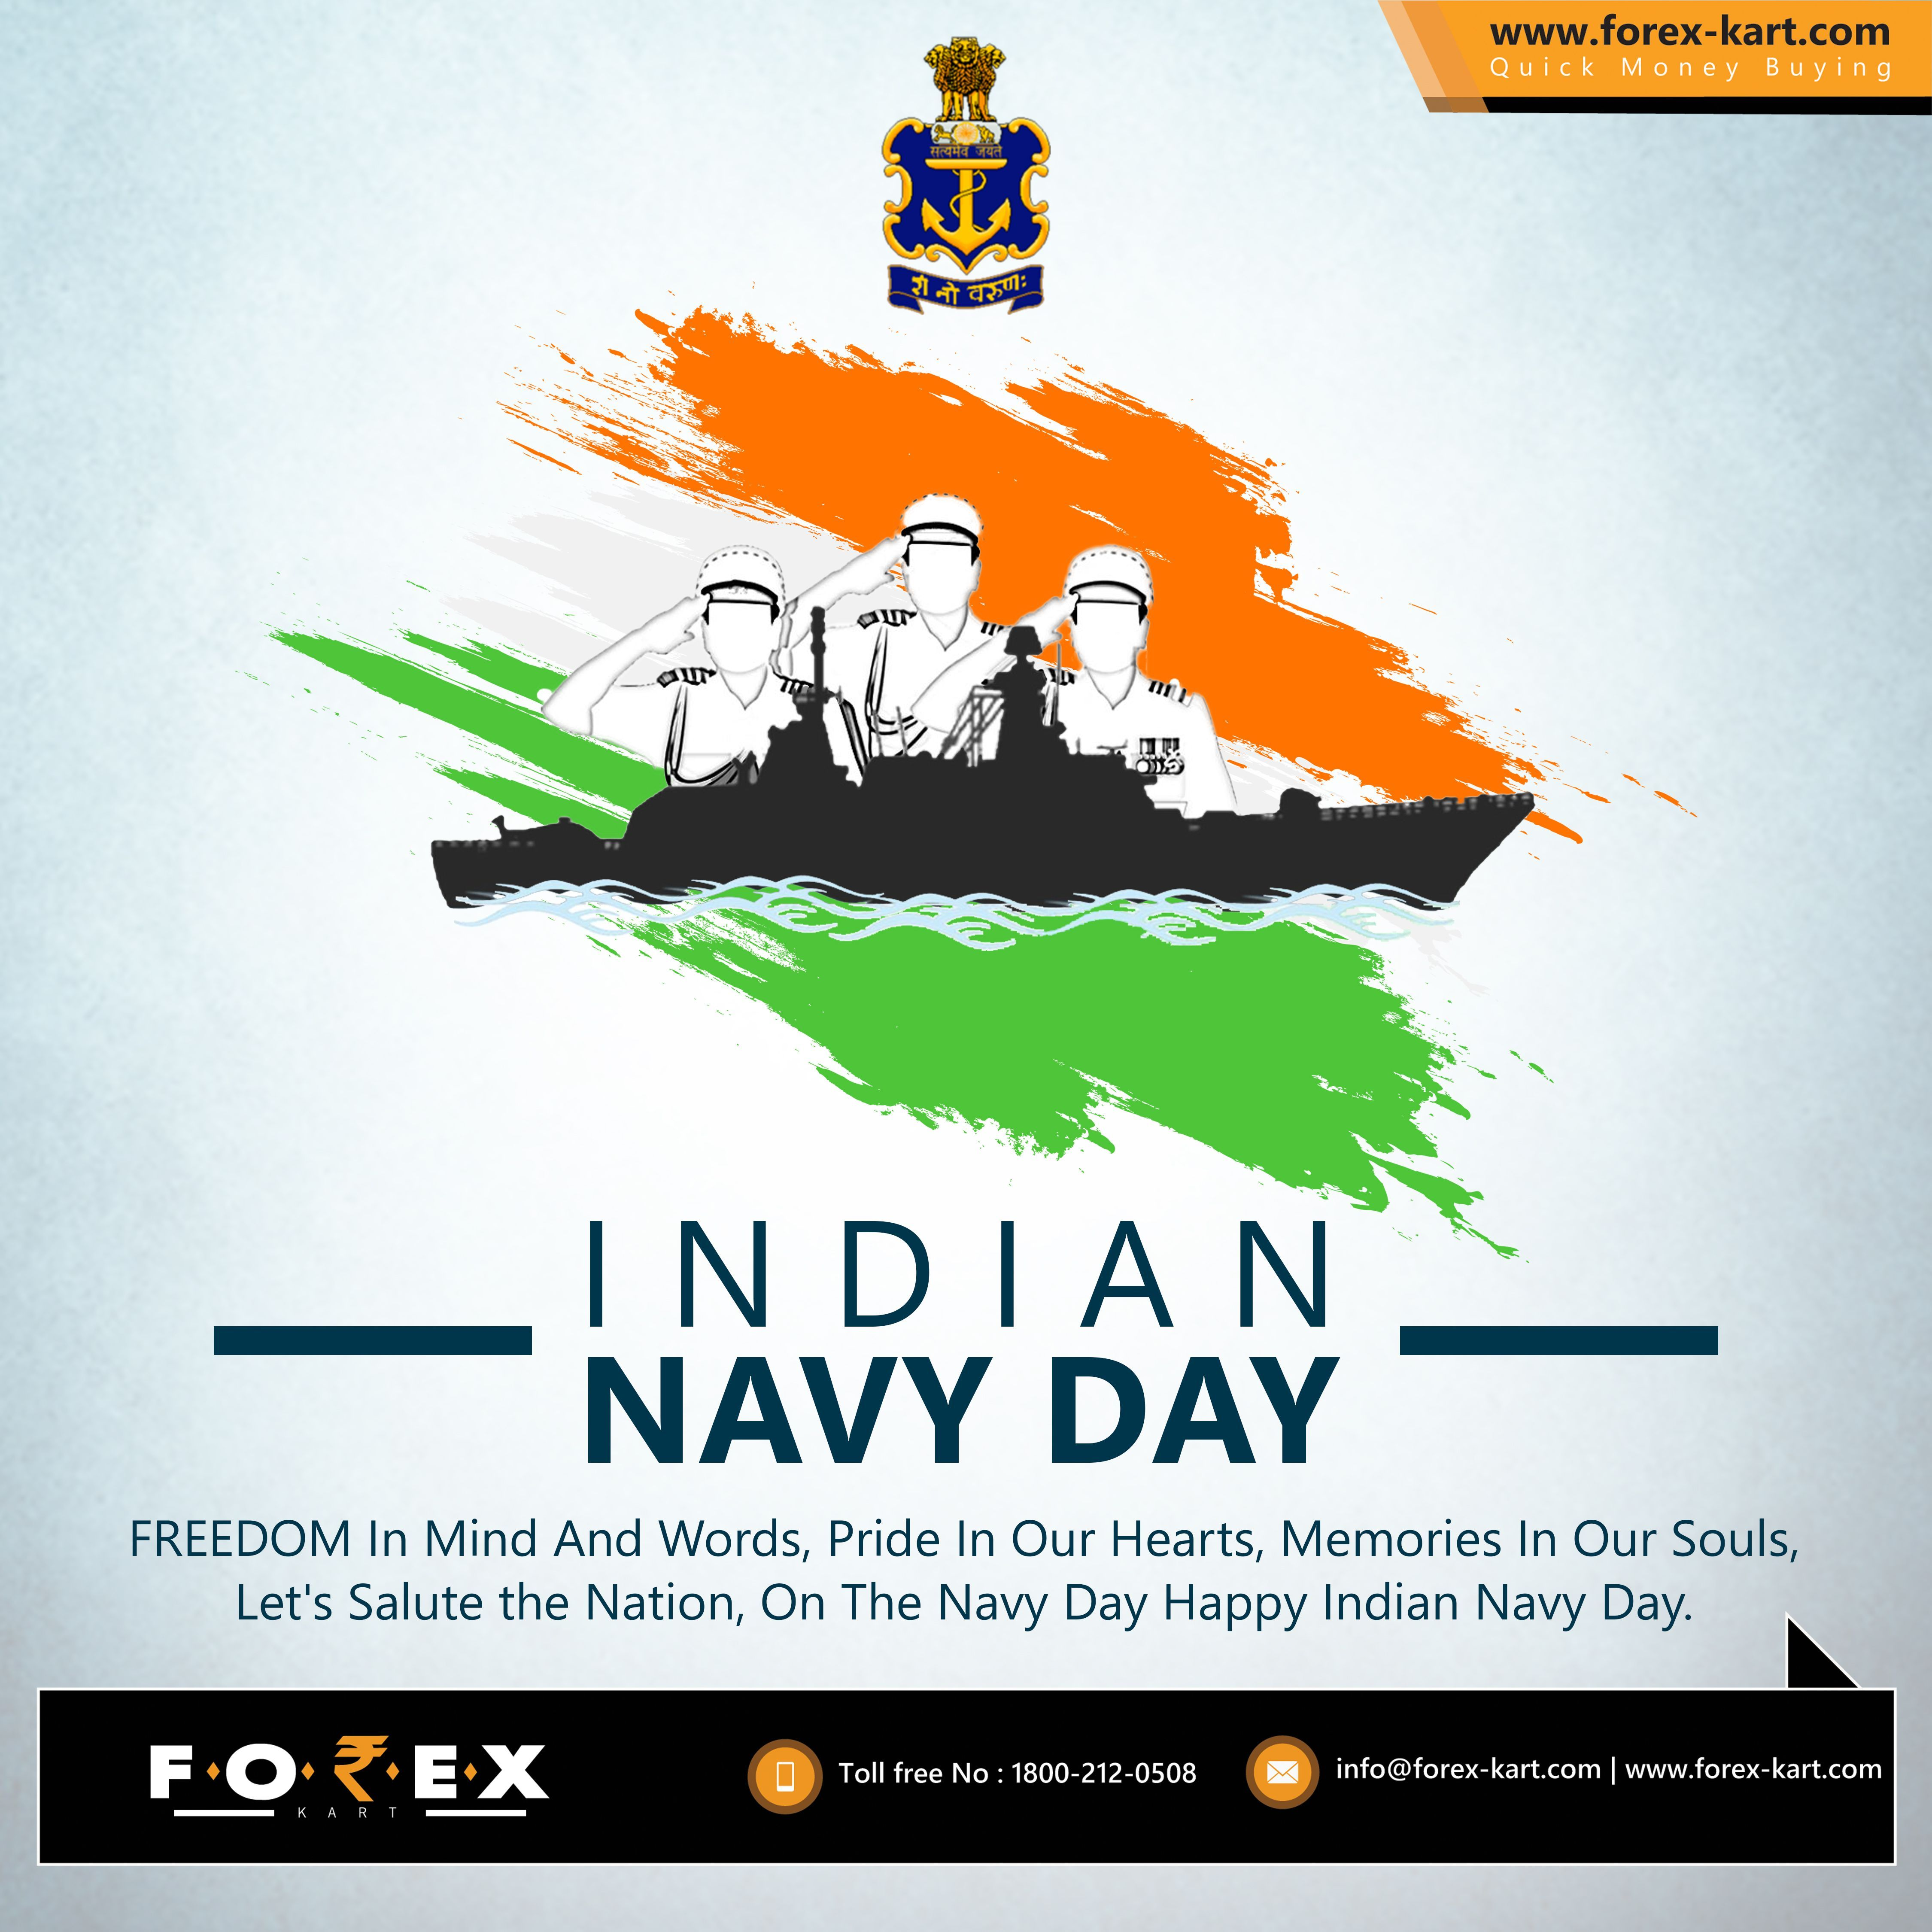 10 Logo Designs Of Government Of India Setups Or Companies Indian Army Wallpapers Navy Wallpaper Indian Navy